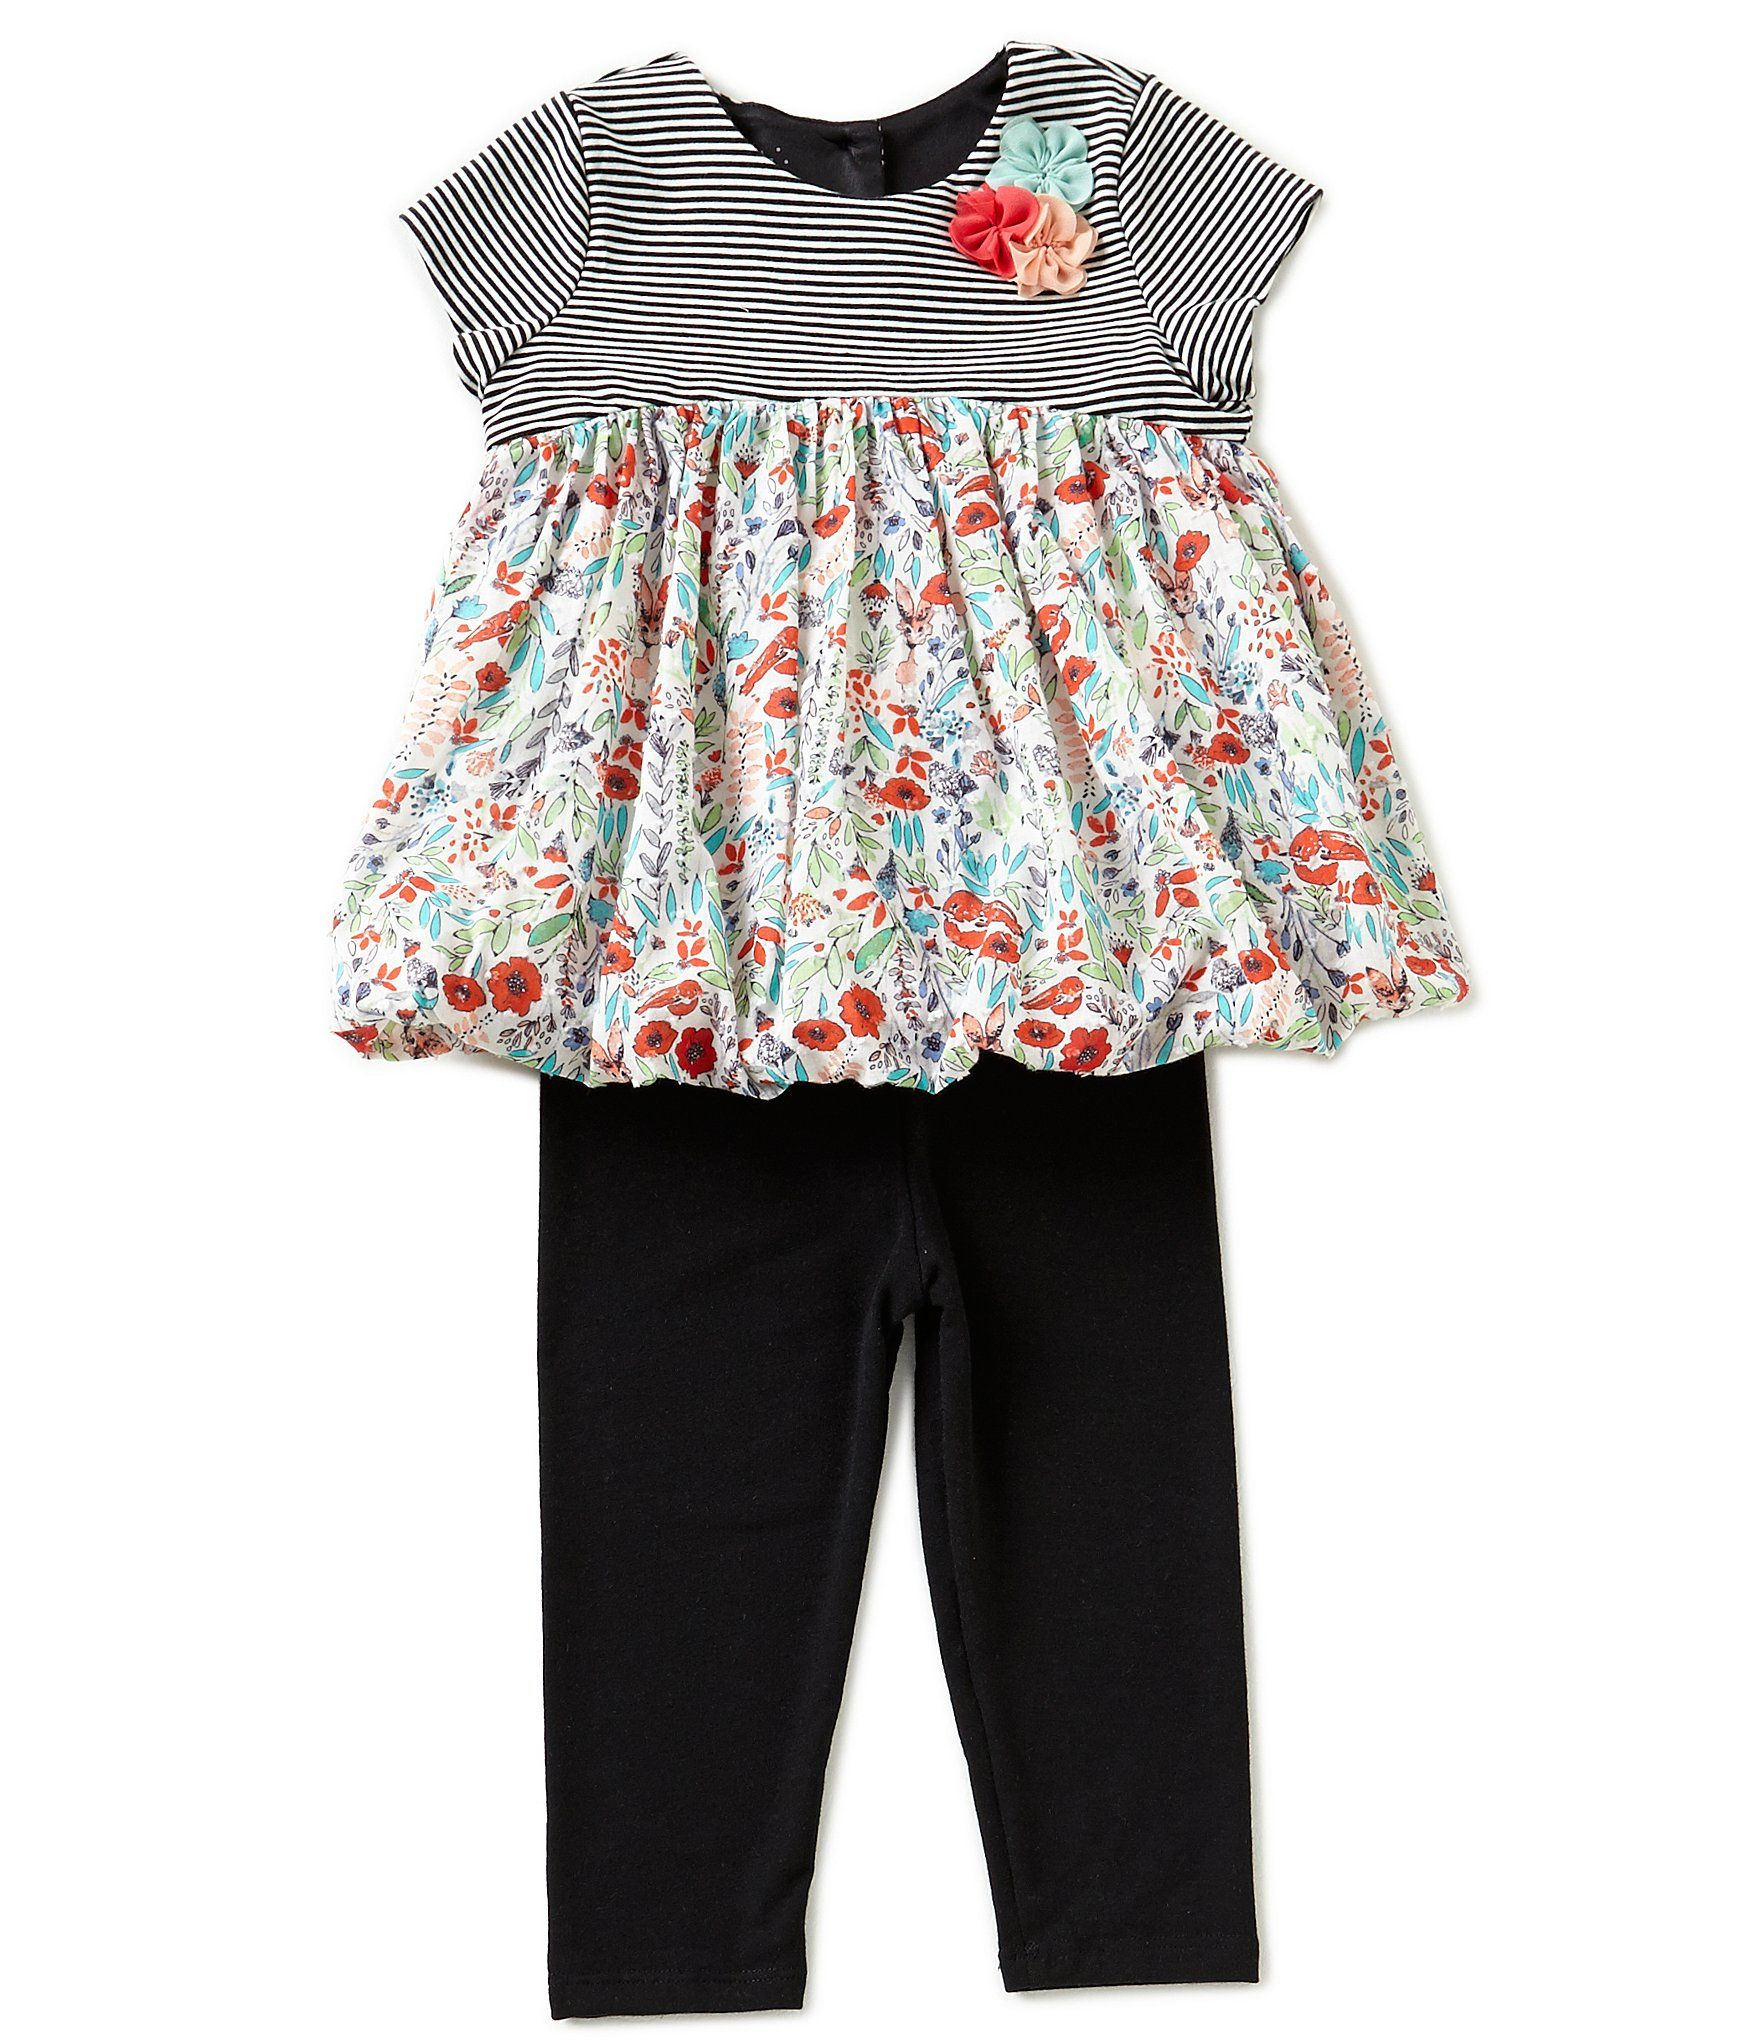 Marmellata Baby Girls 1224 Months FloralStriped Top and Leggings Set